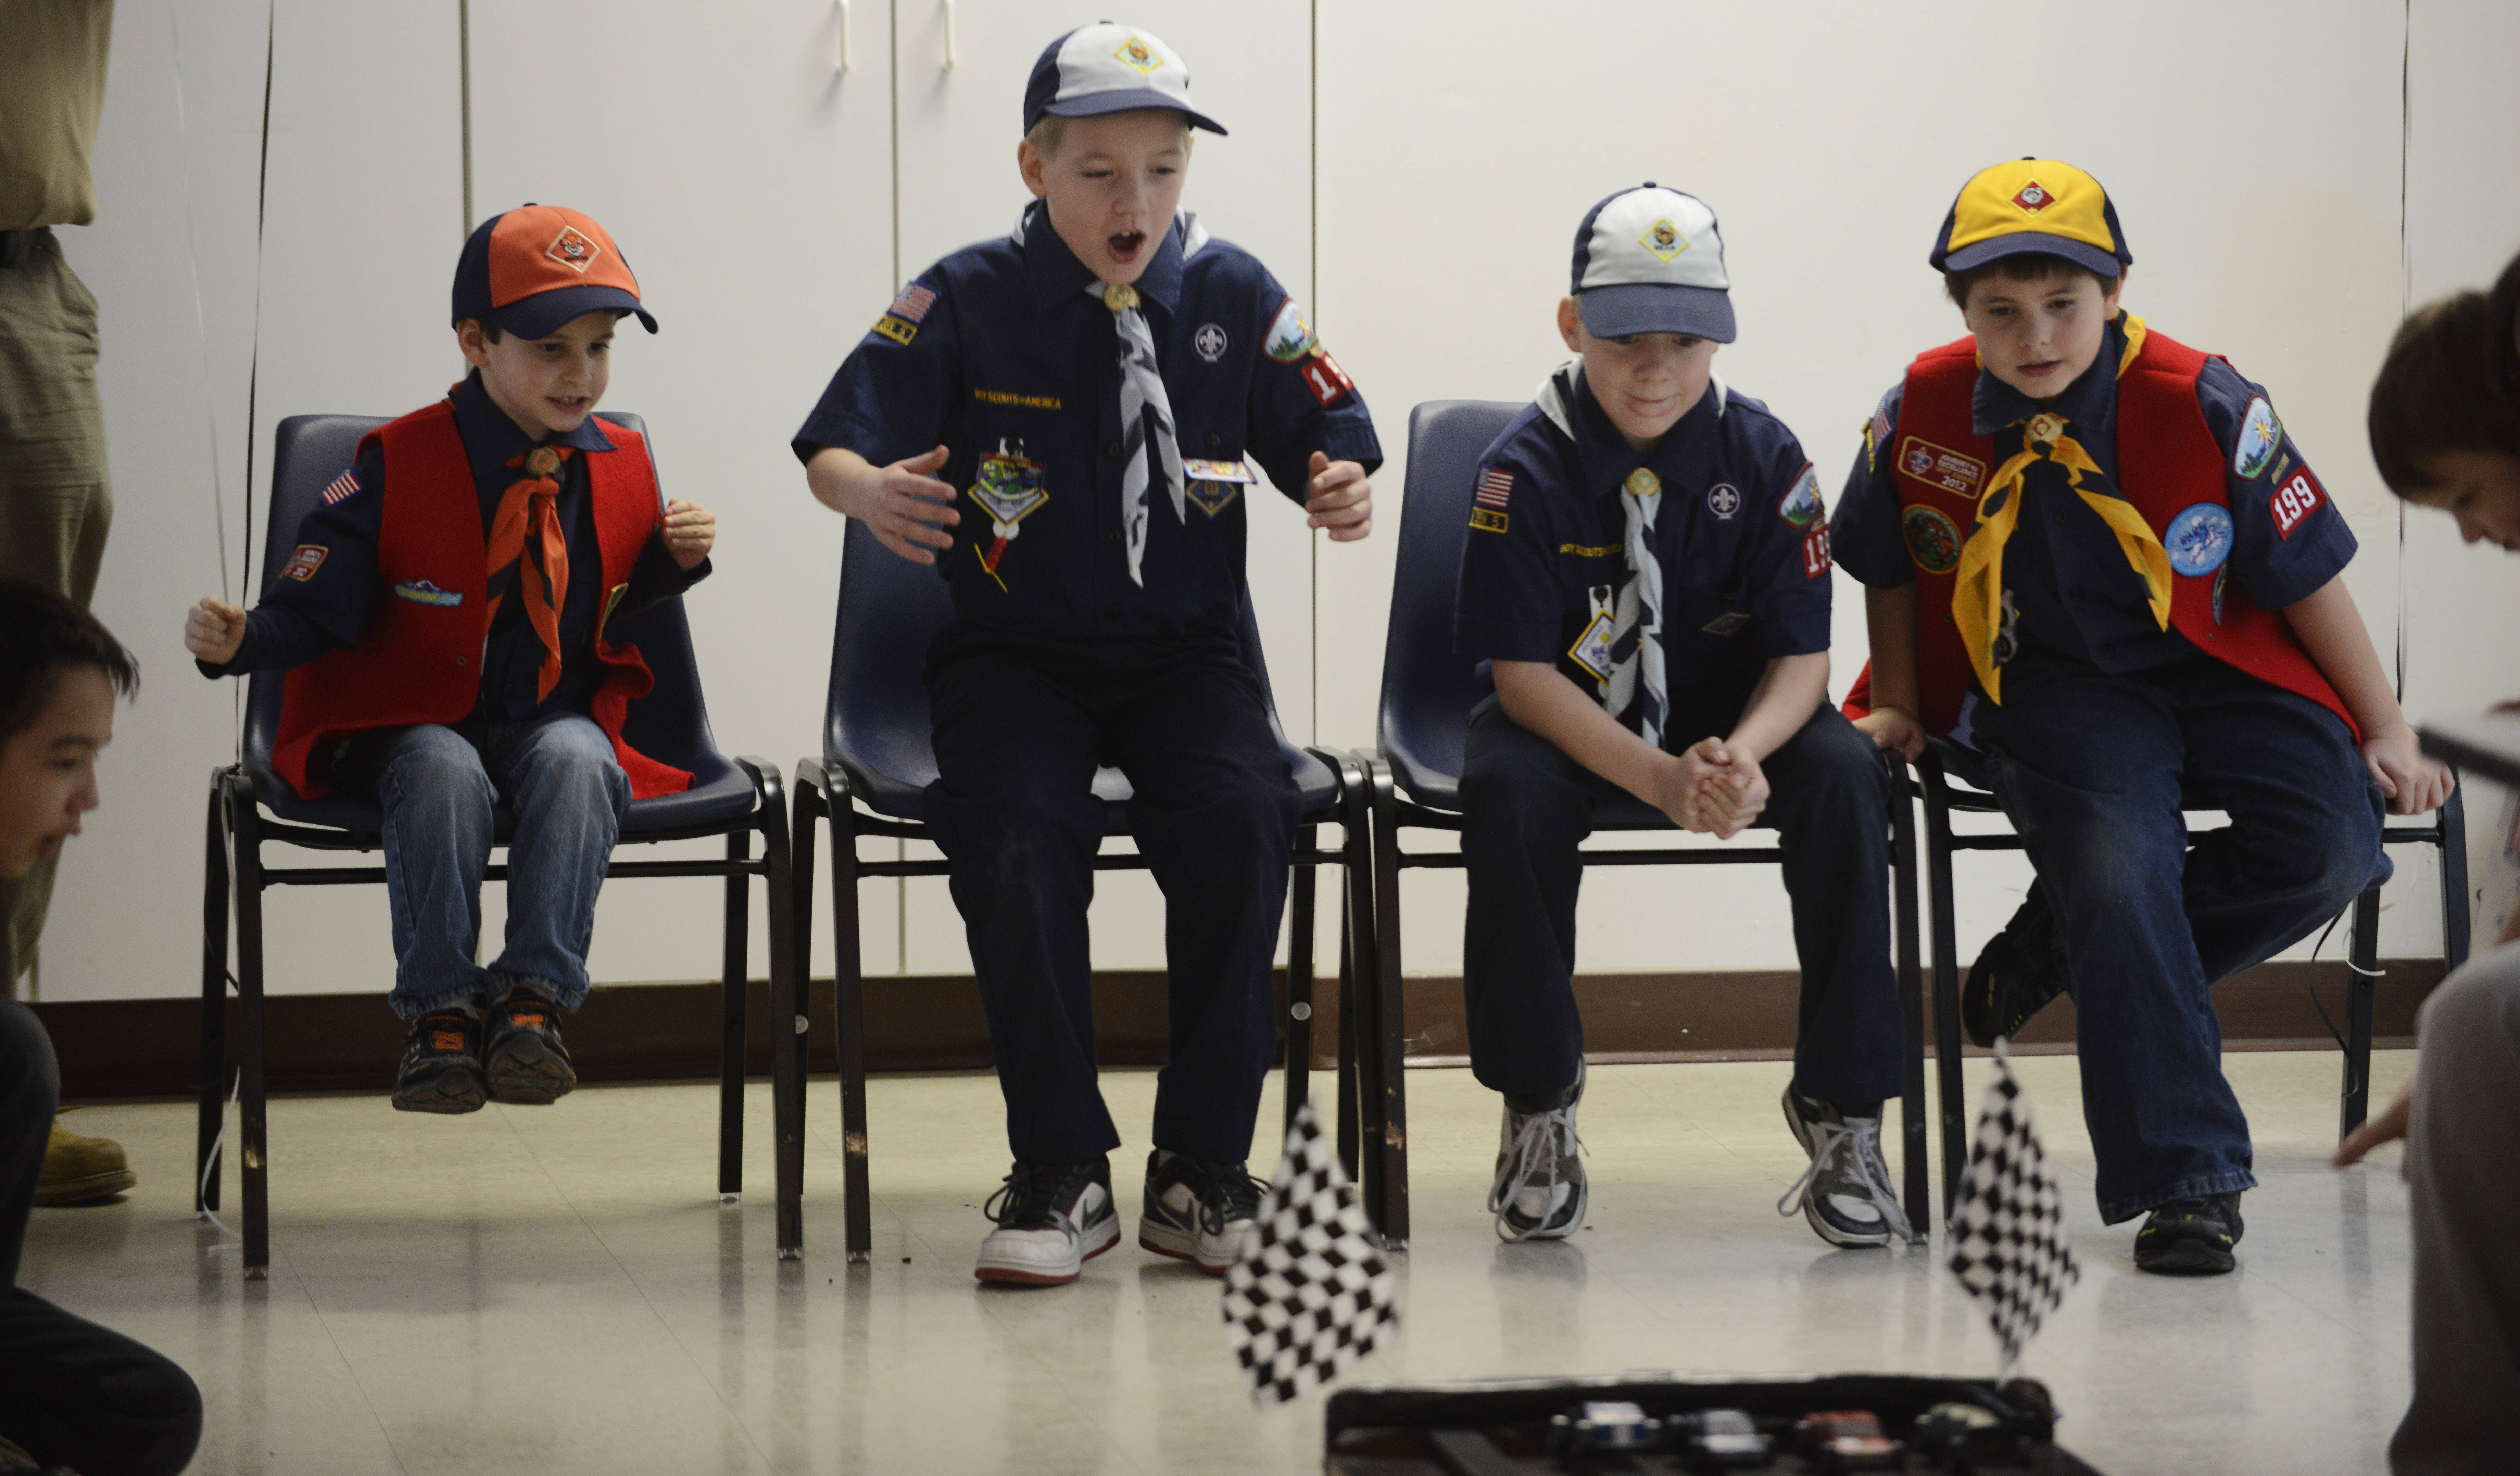 Left to right, Cadyn Wollmuth, 6, twins Brayden and Bryan O'Connor, 8, and Lucas Wollmuth, 8, cheer as the four fastest cars compete Saturday during the Cub Scout Super Pack 199 annual Pinewood Derby at the Round Lake Area Park District's Robert W. Rolek Community Center.